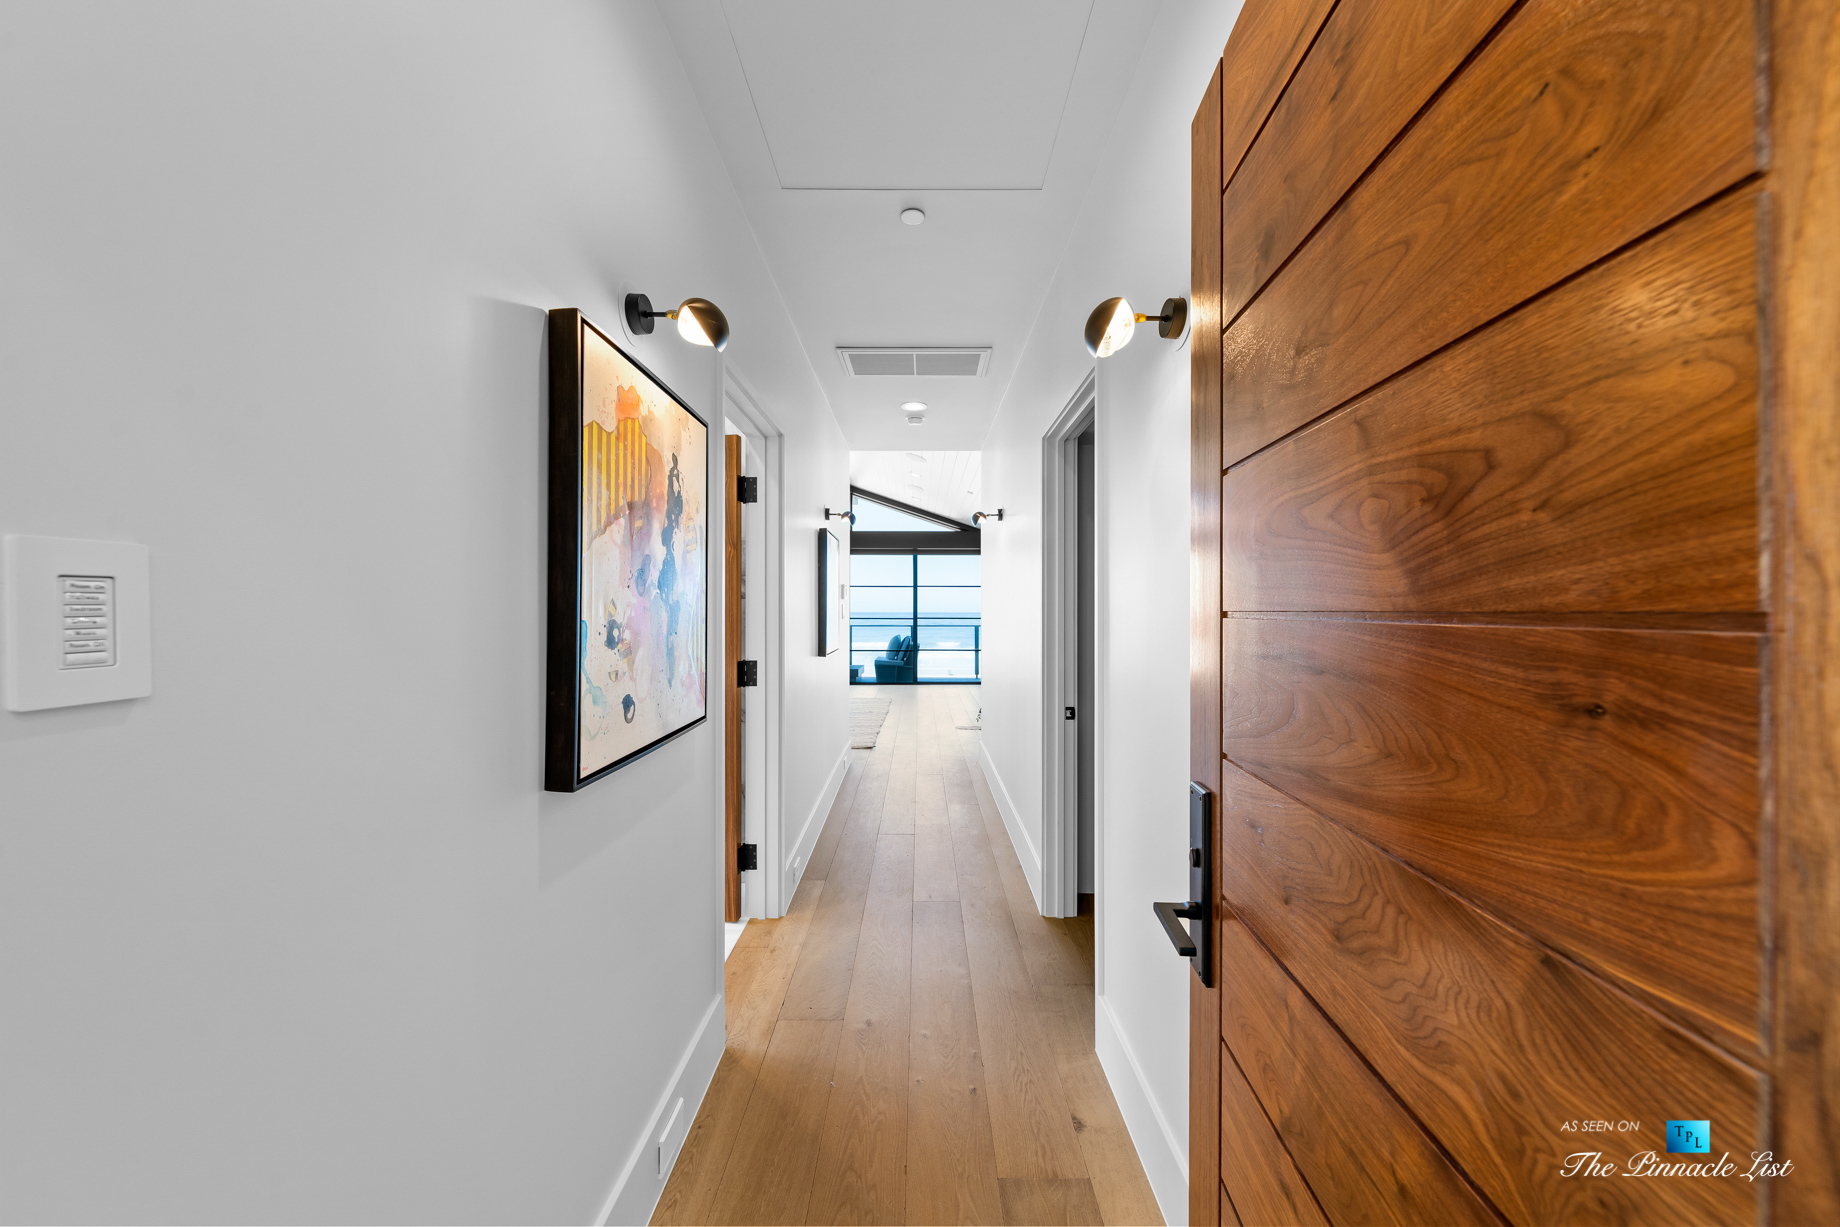 508 The Strand, Manhattan Beach, CA, USA – Master Bedroom Entry – Luxury Real Estate – Oceanfront Home